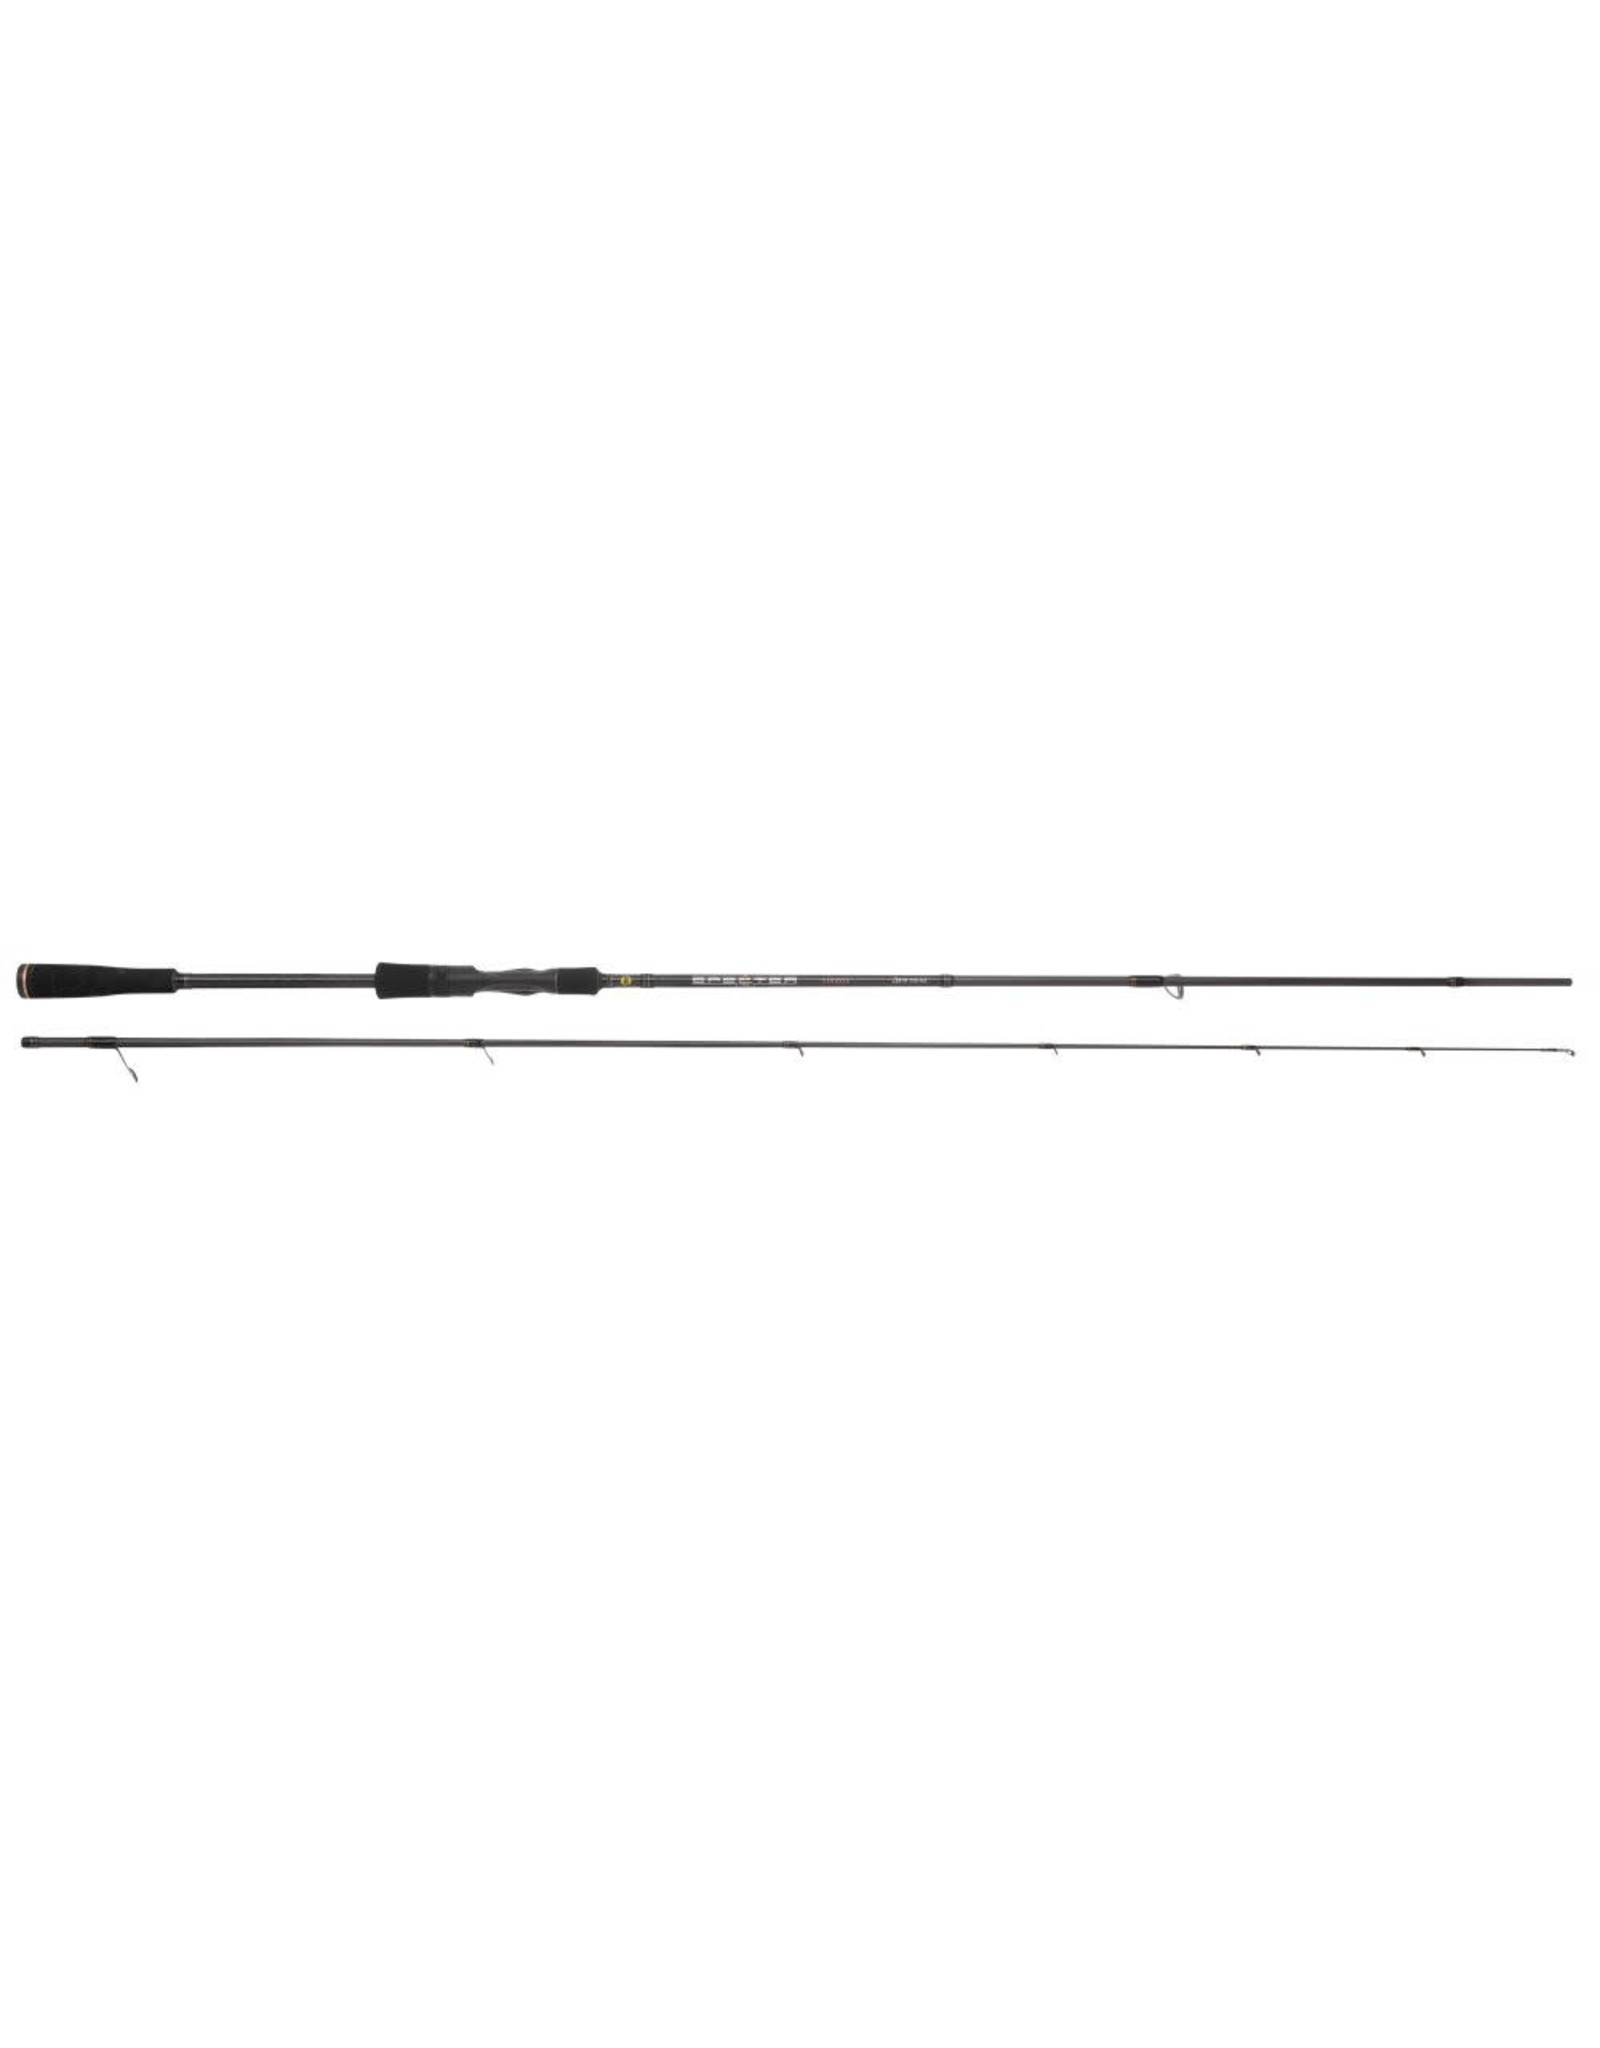 SPRO SPECTER FINESSE SPIN 2.68M 10-28GR